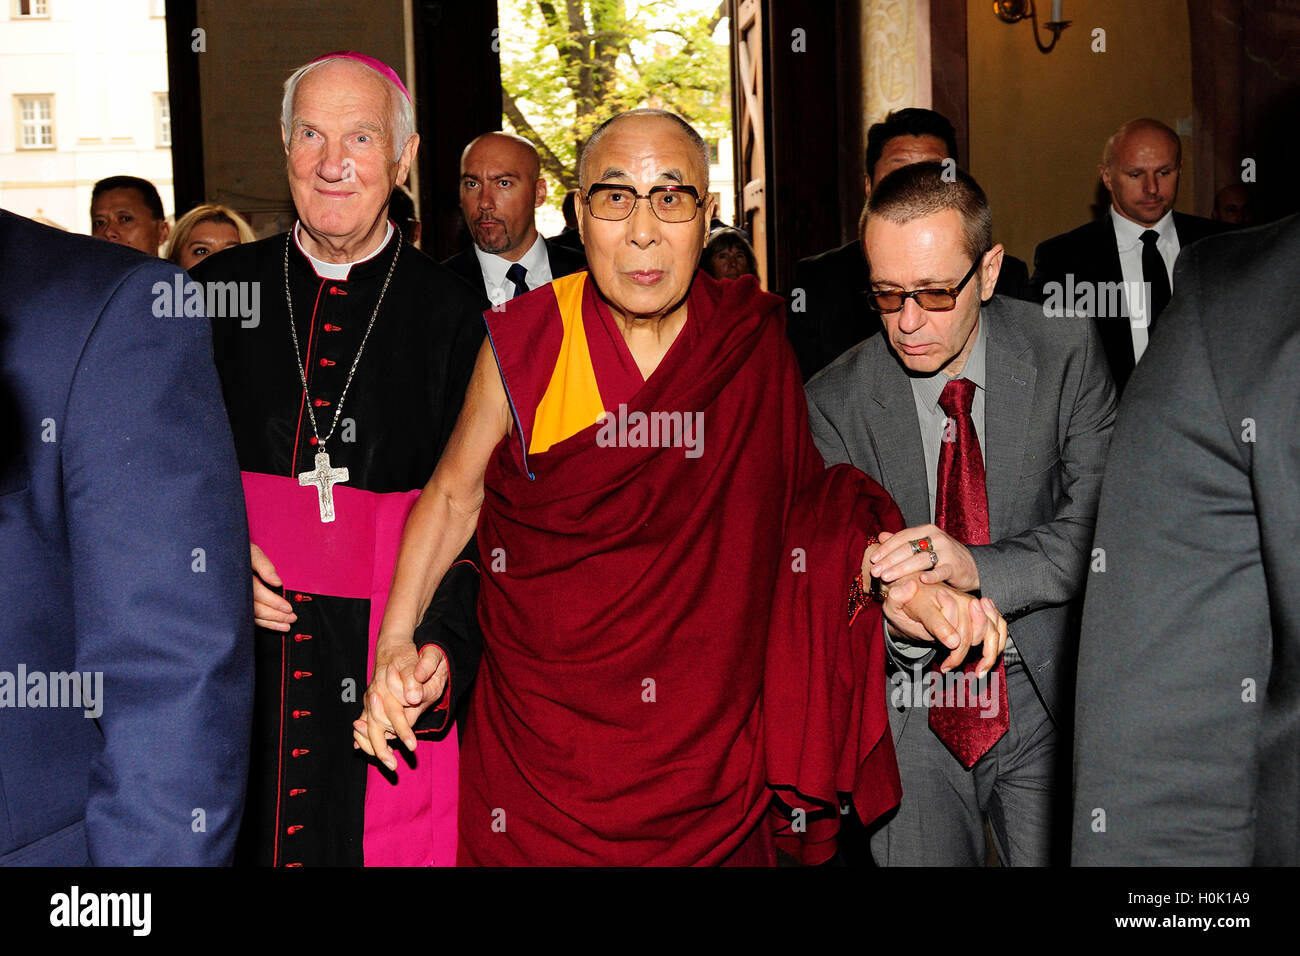 Swidnica, Poland  21st Sep, 2016  The Dalai Lama, visiting